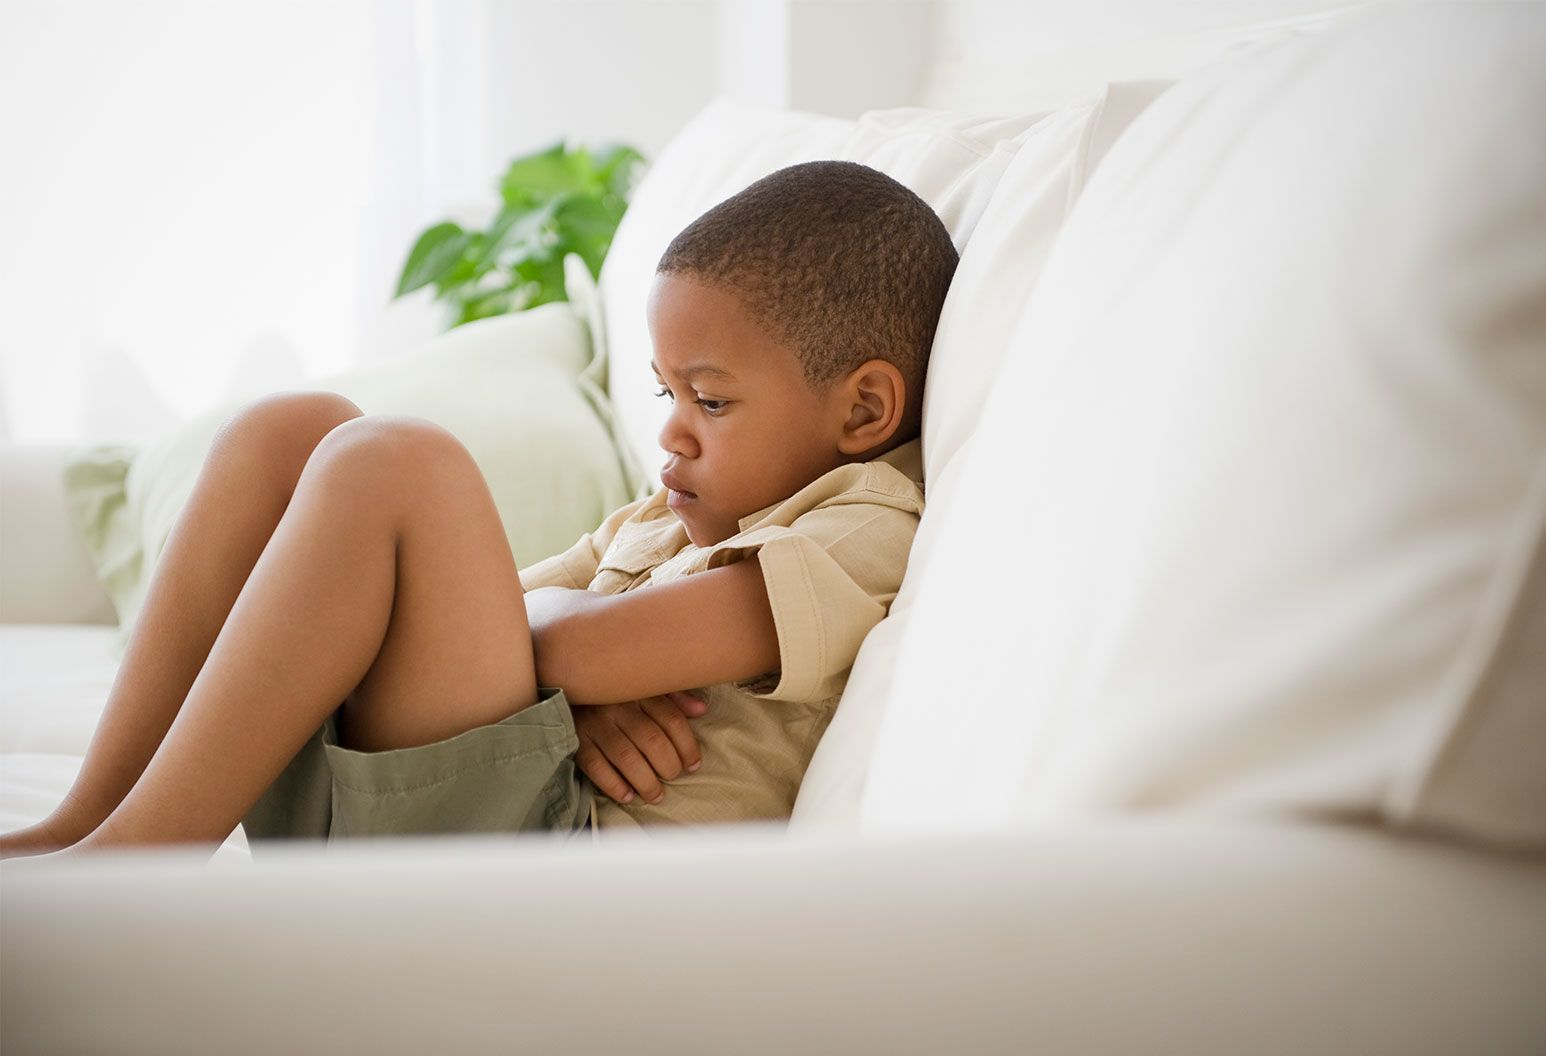 Sad child sits with his arms folded on a white couch.